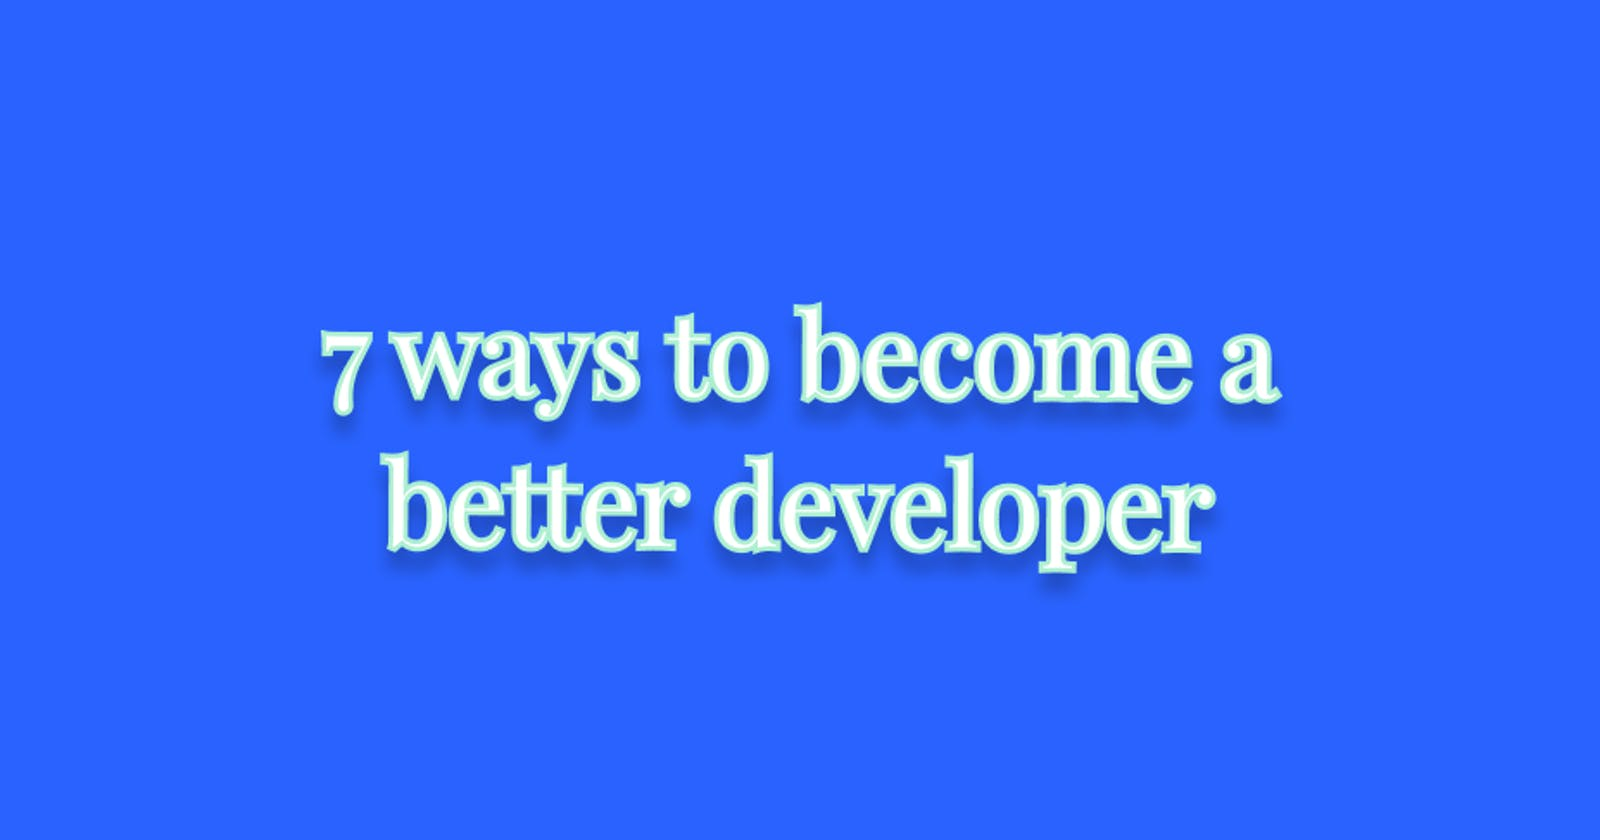 7 easy ways to become a better developer